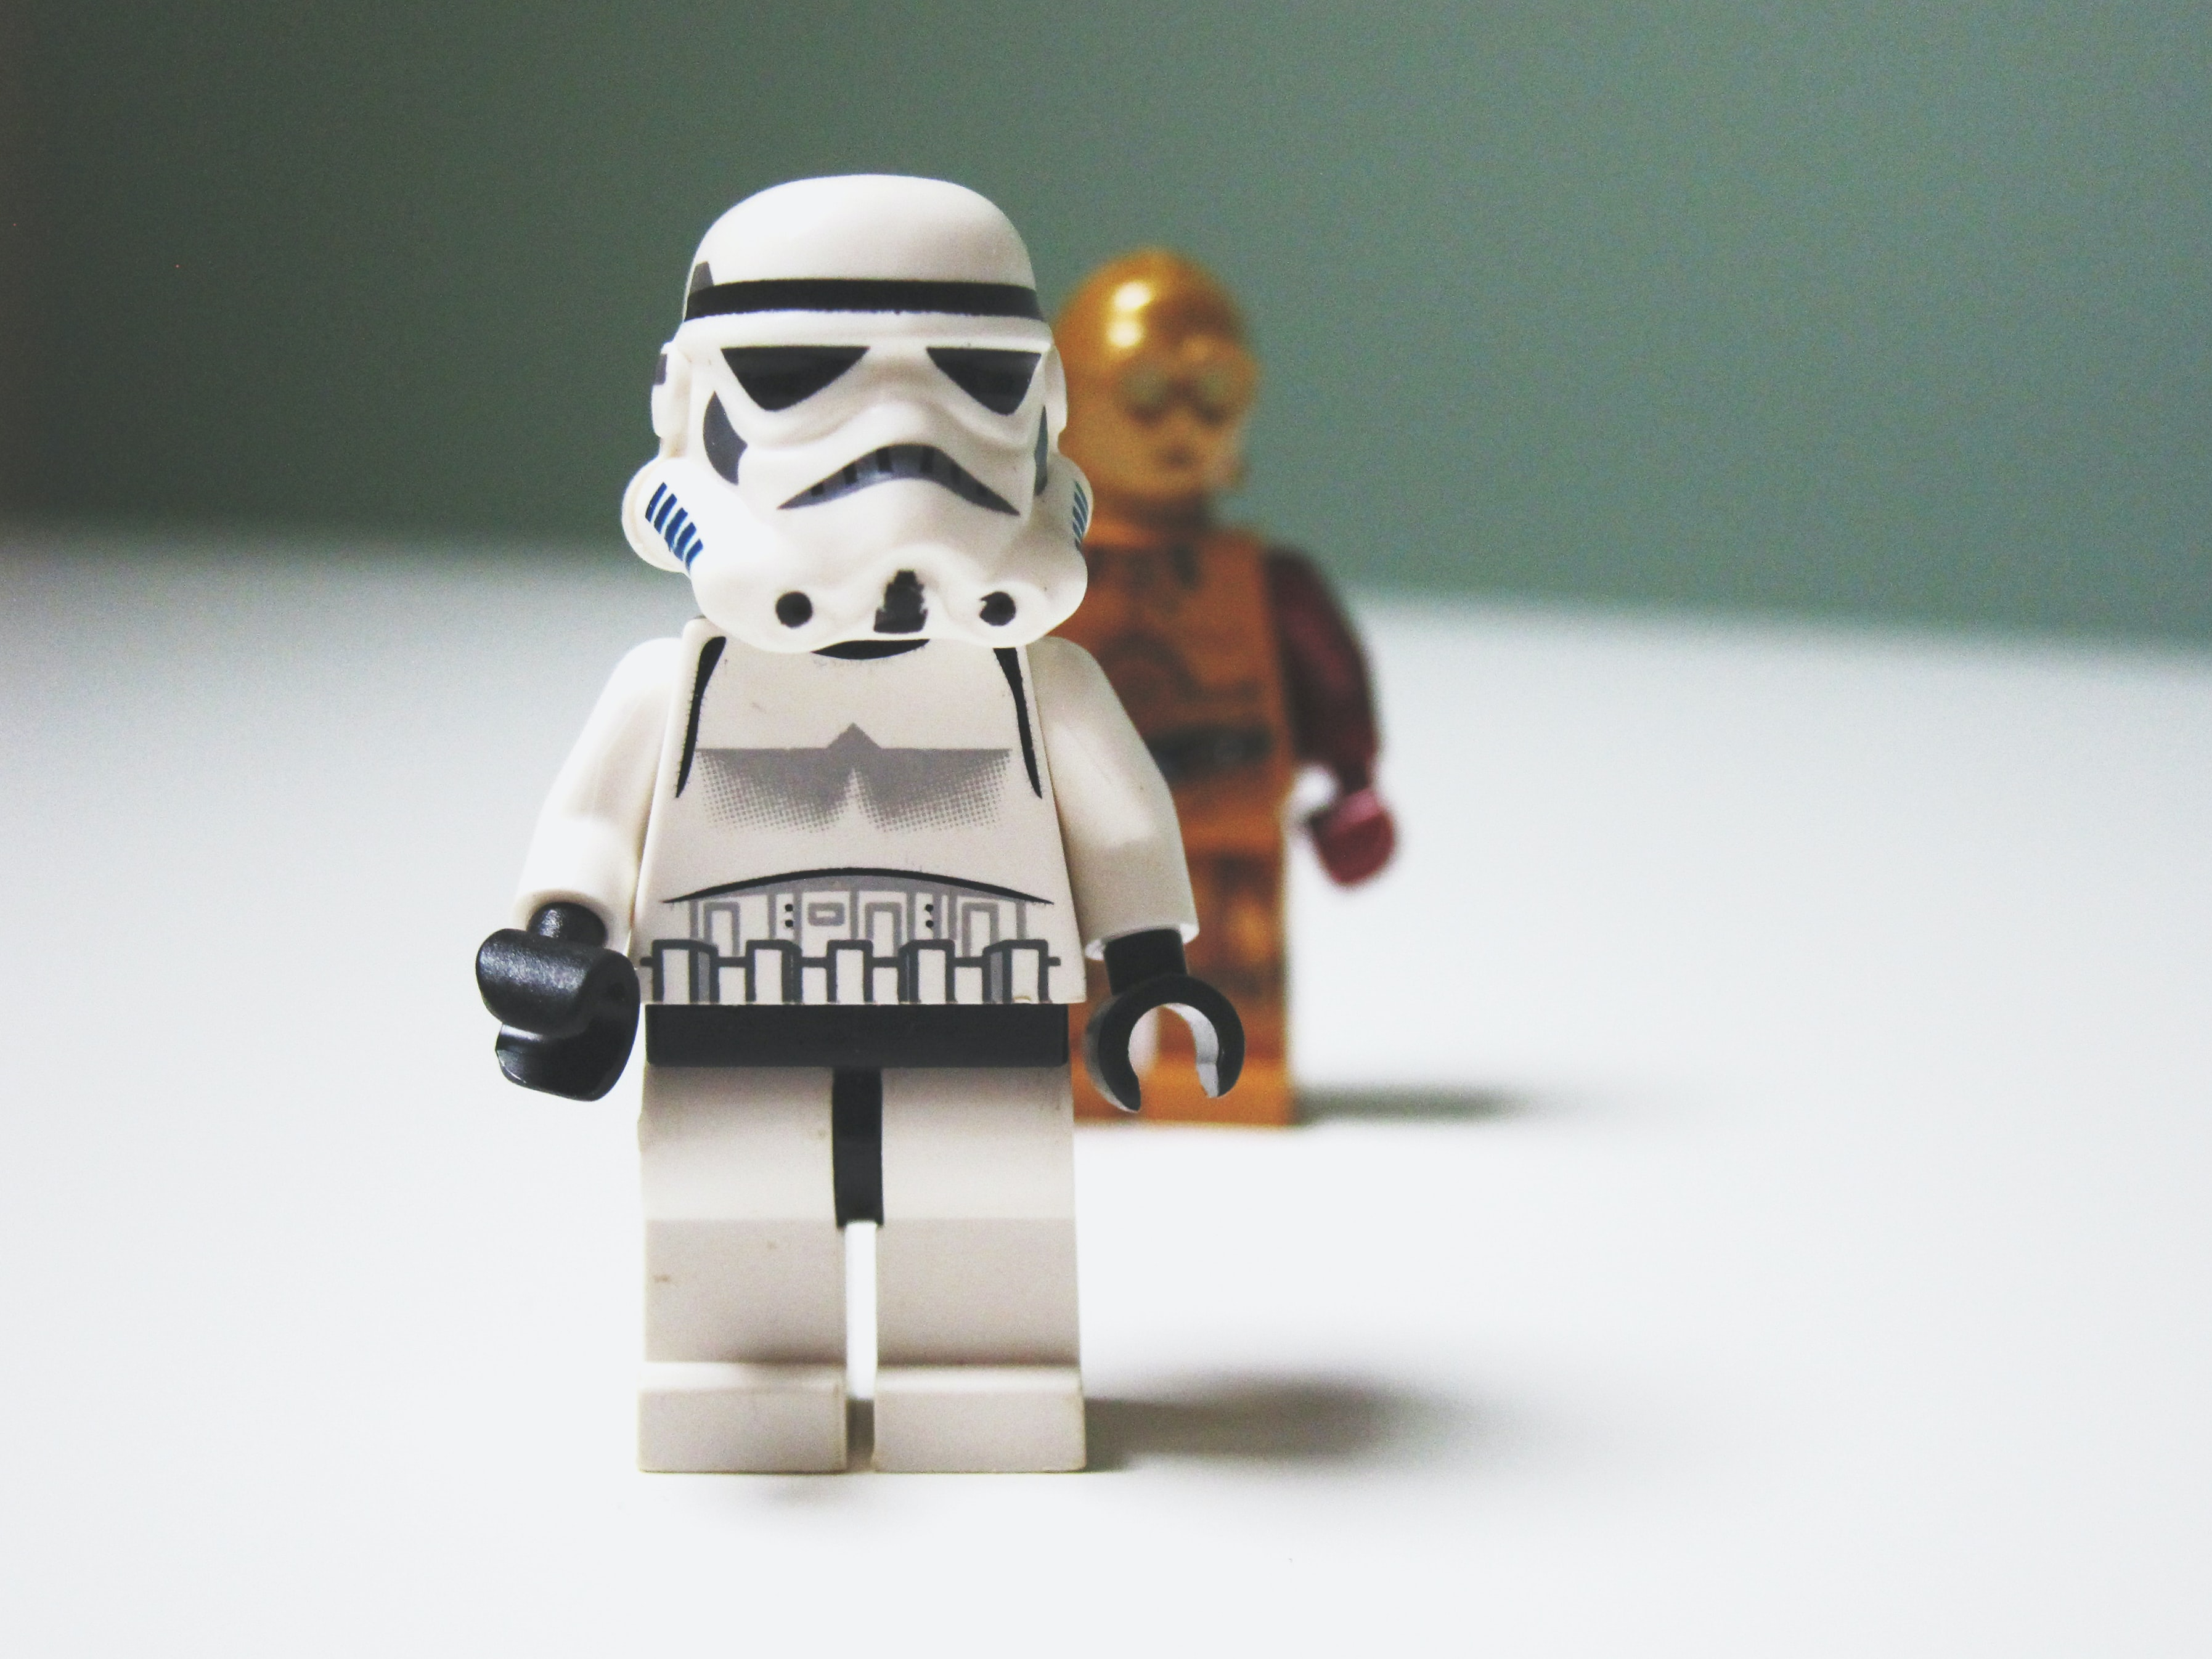 Lego Star Wars C3-P0 behind Stormtrooper toys